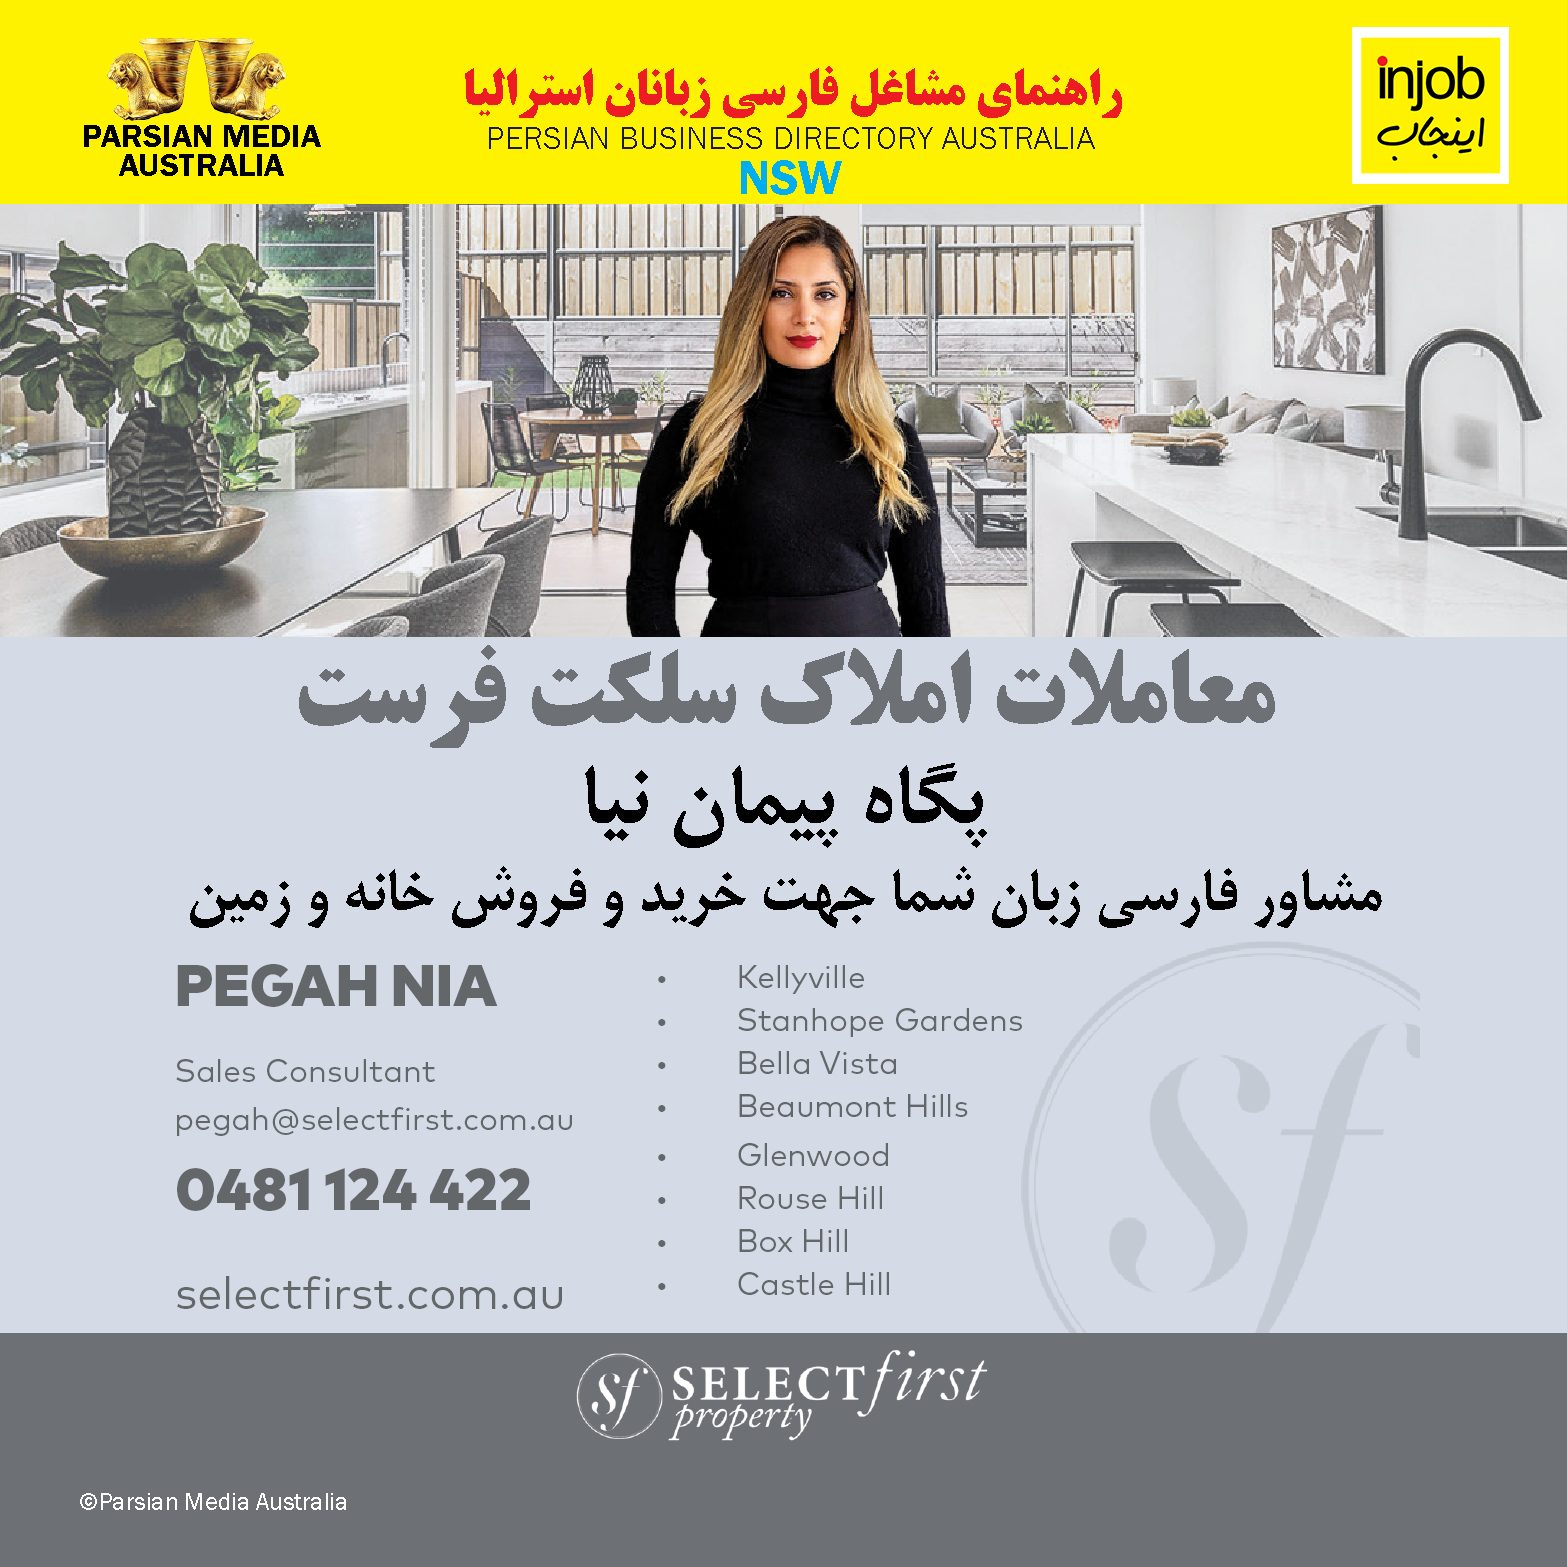 Select first-Injob 2021-online.jpg